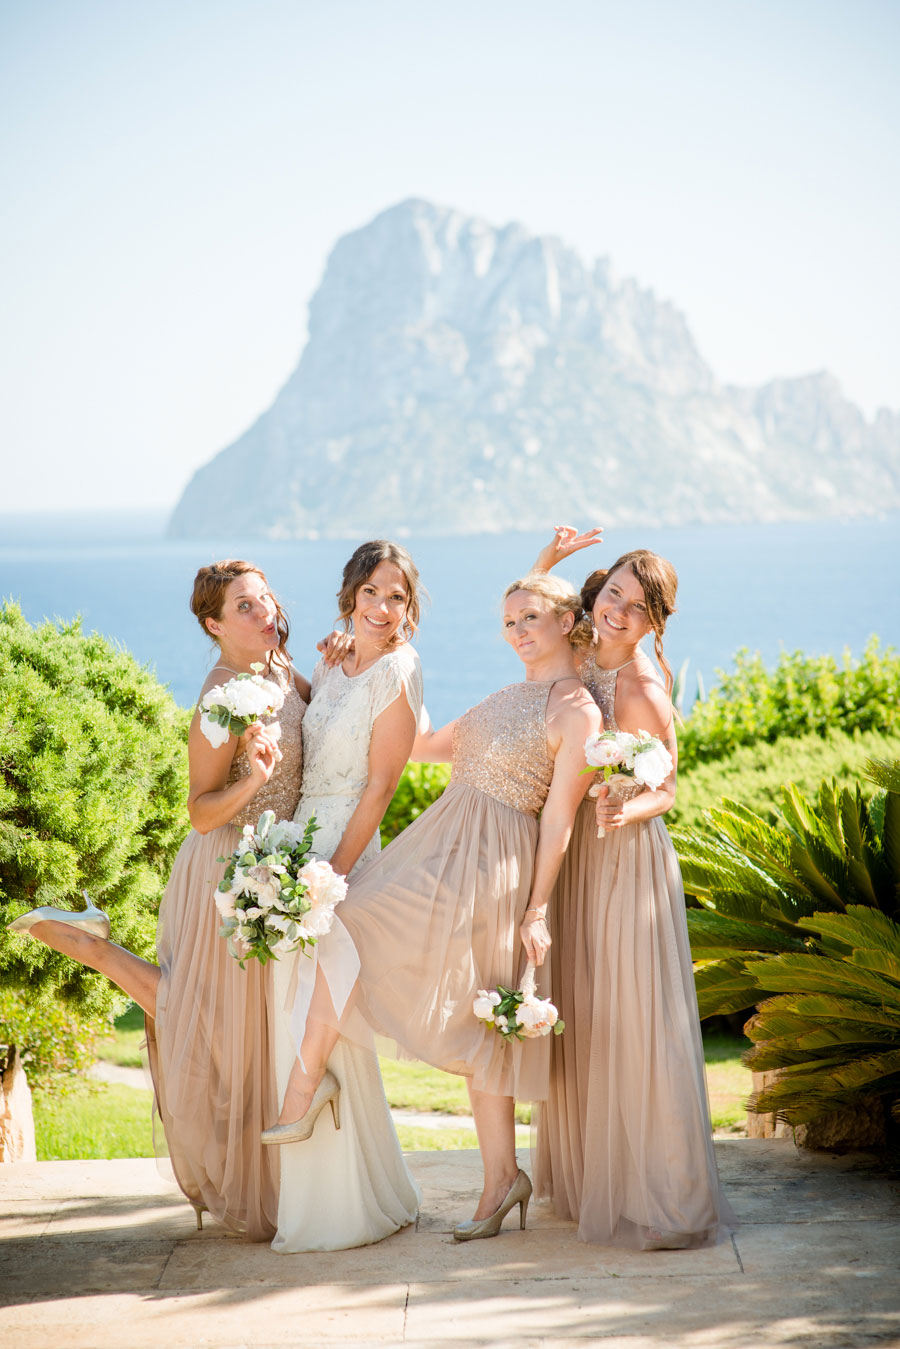 nicola-and-jimmy-es-vedra-ibiza-gypsy-westwood-photography-54